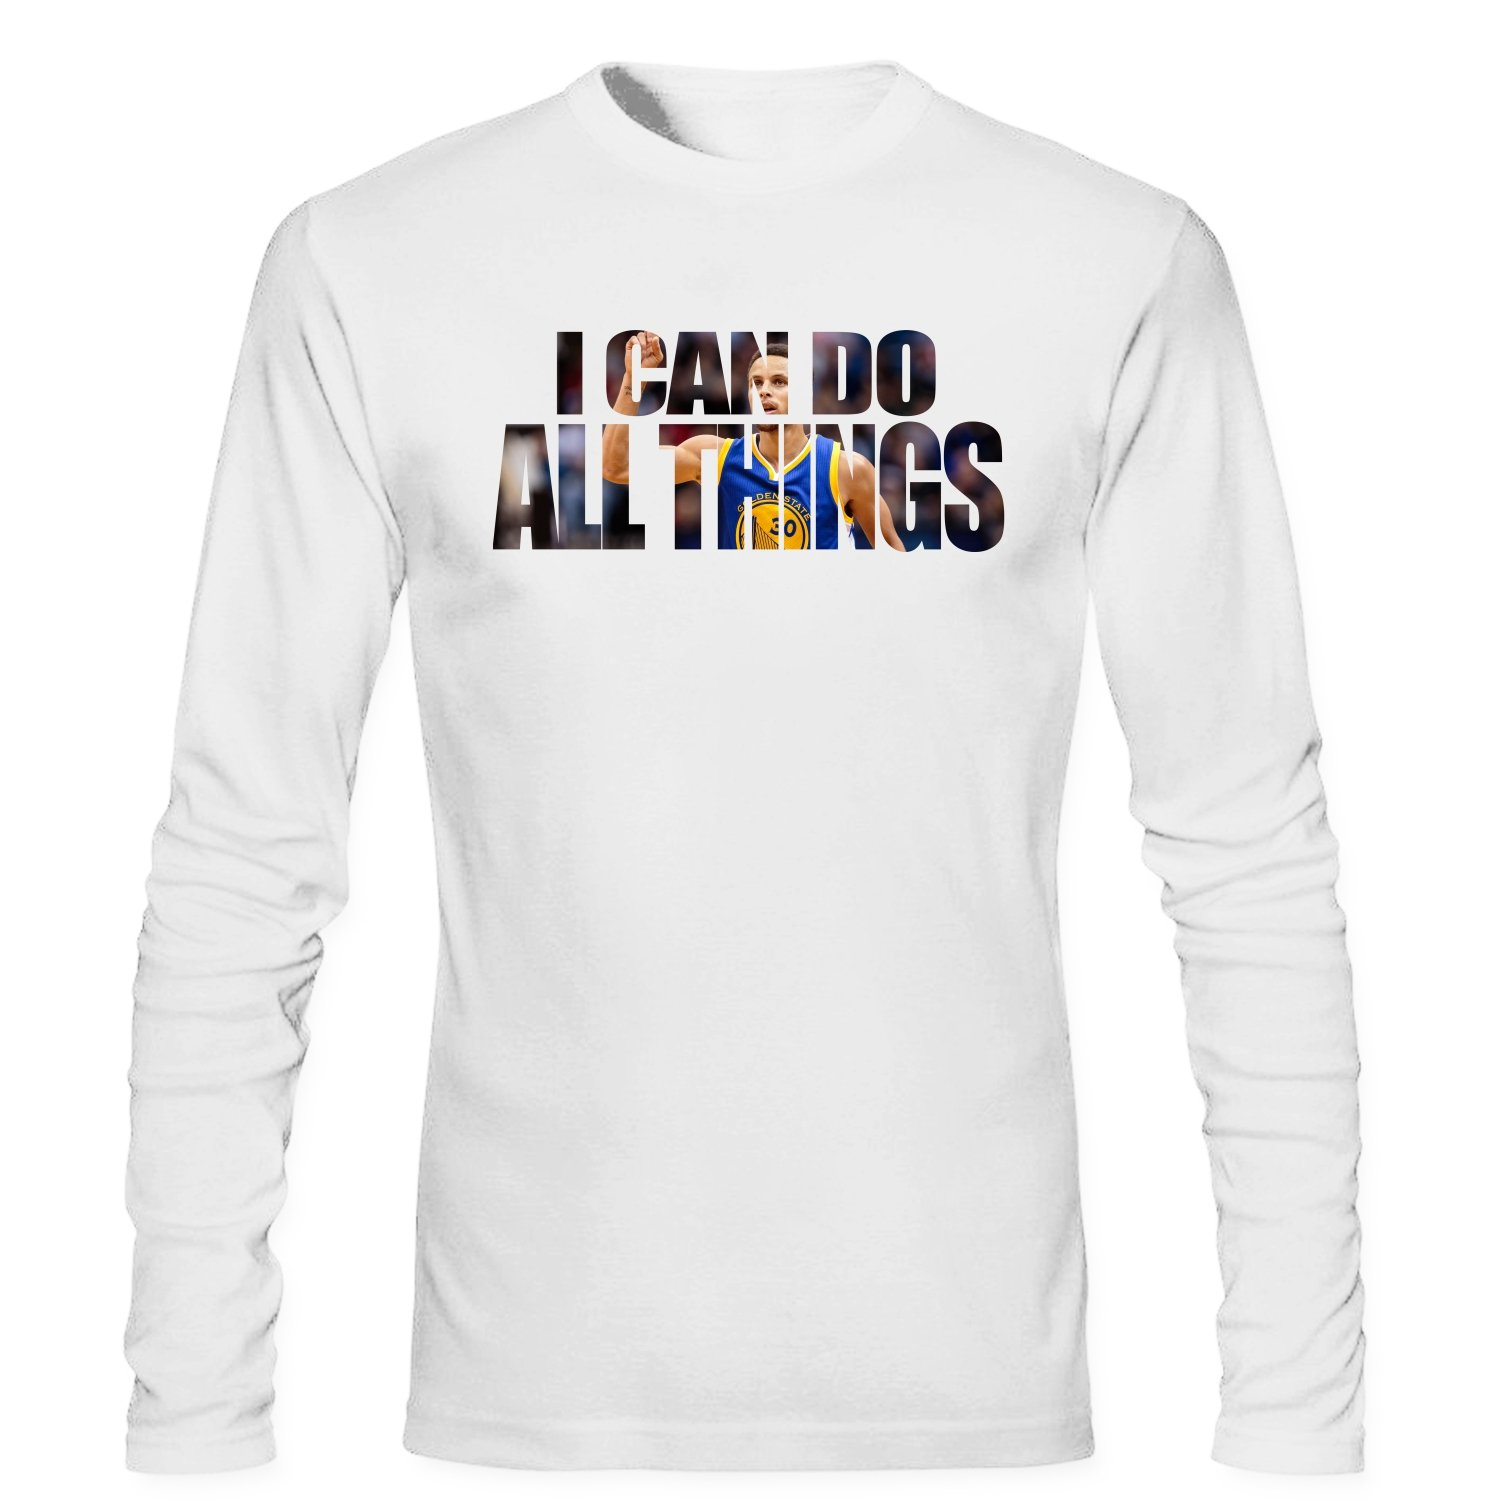 100% authentic 38221 b4074 Amazon.com: SKVV Men's Stephen Curry I Can Do All Things ...